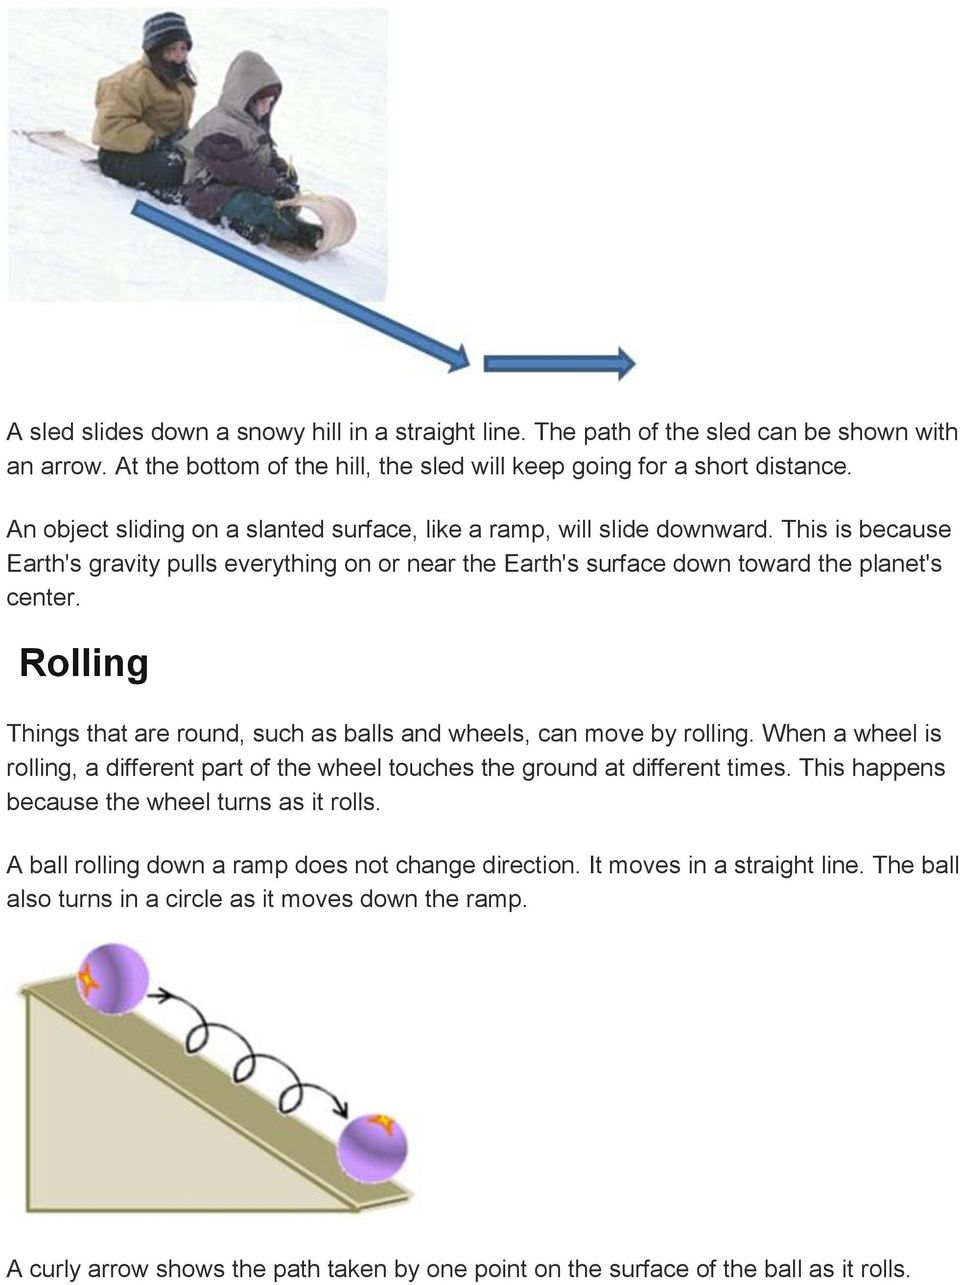 Rolling Things that are round, such as balls and wheels, can move by rolling. When a wheel is rolling, a different part of the wheel touches the ground at different times.